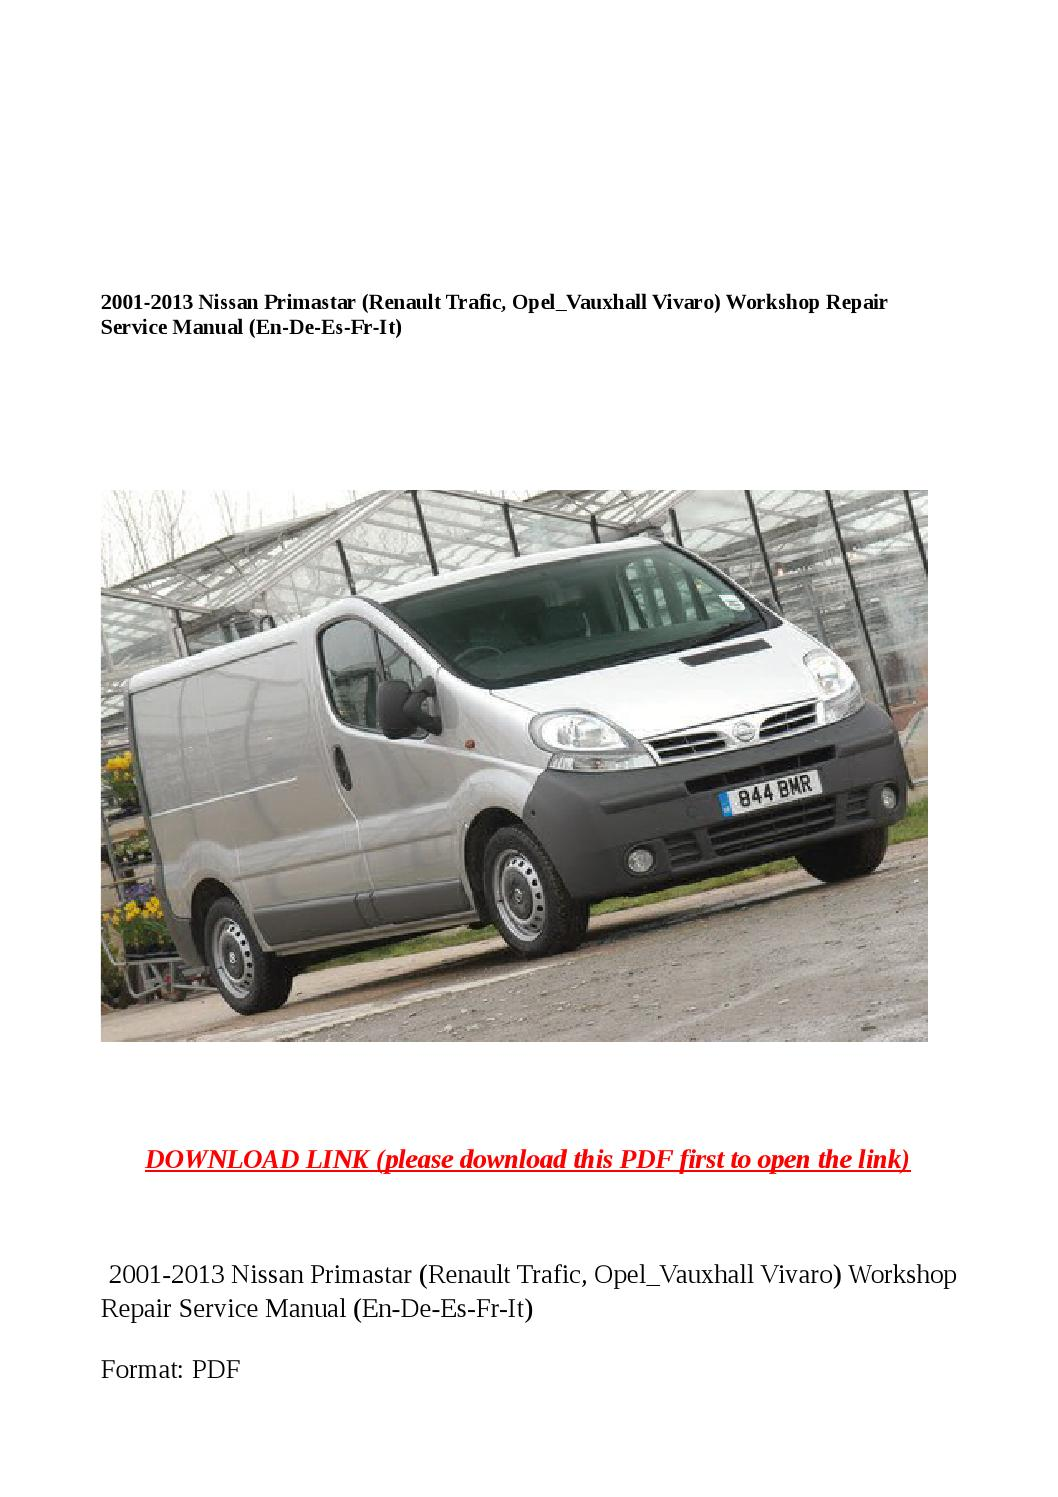 2001 2013 nissan primastar (renault trafic, opel vauxhall vivaro) workshop  repair service manual (en by buhbu - issuu